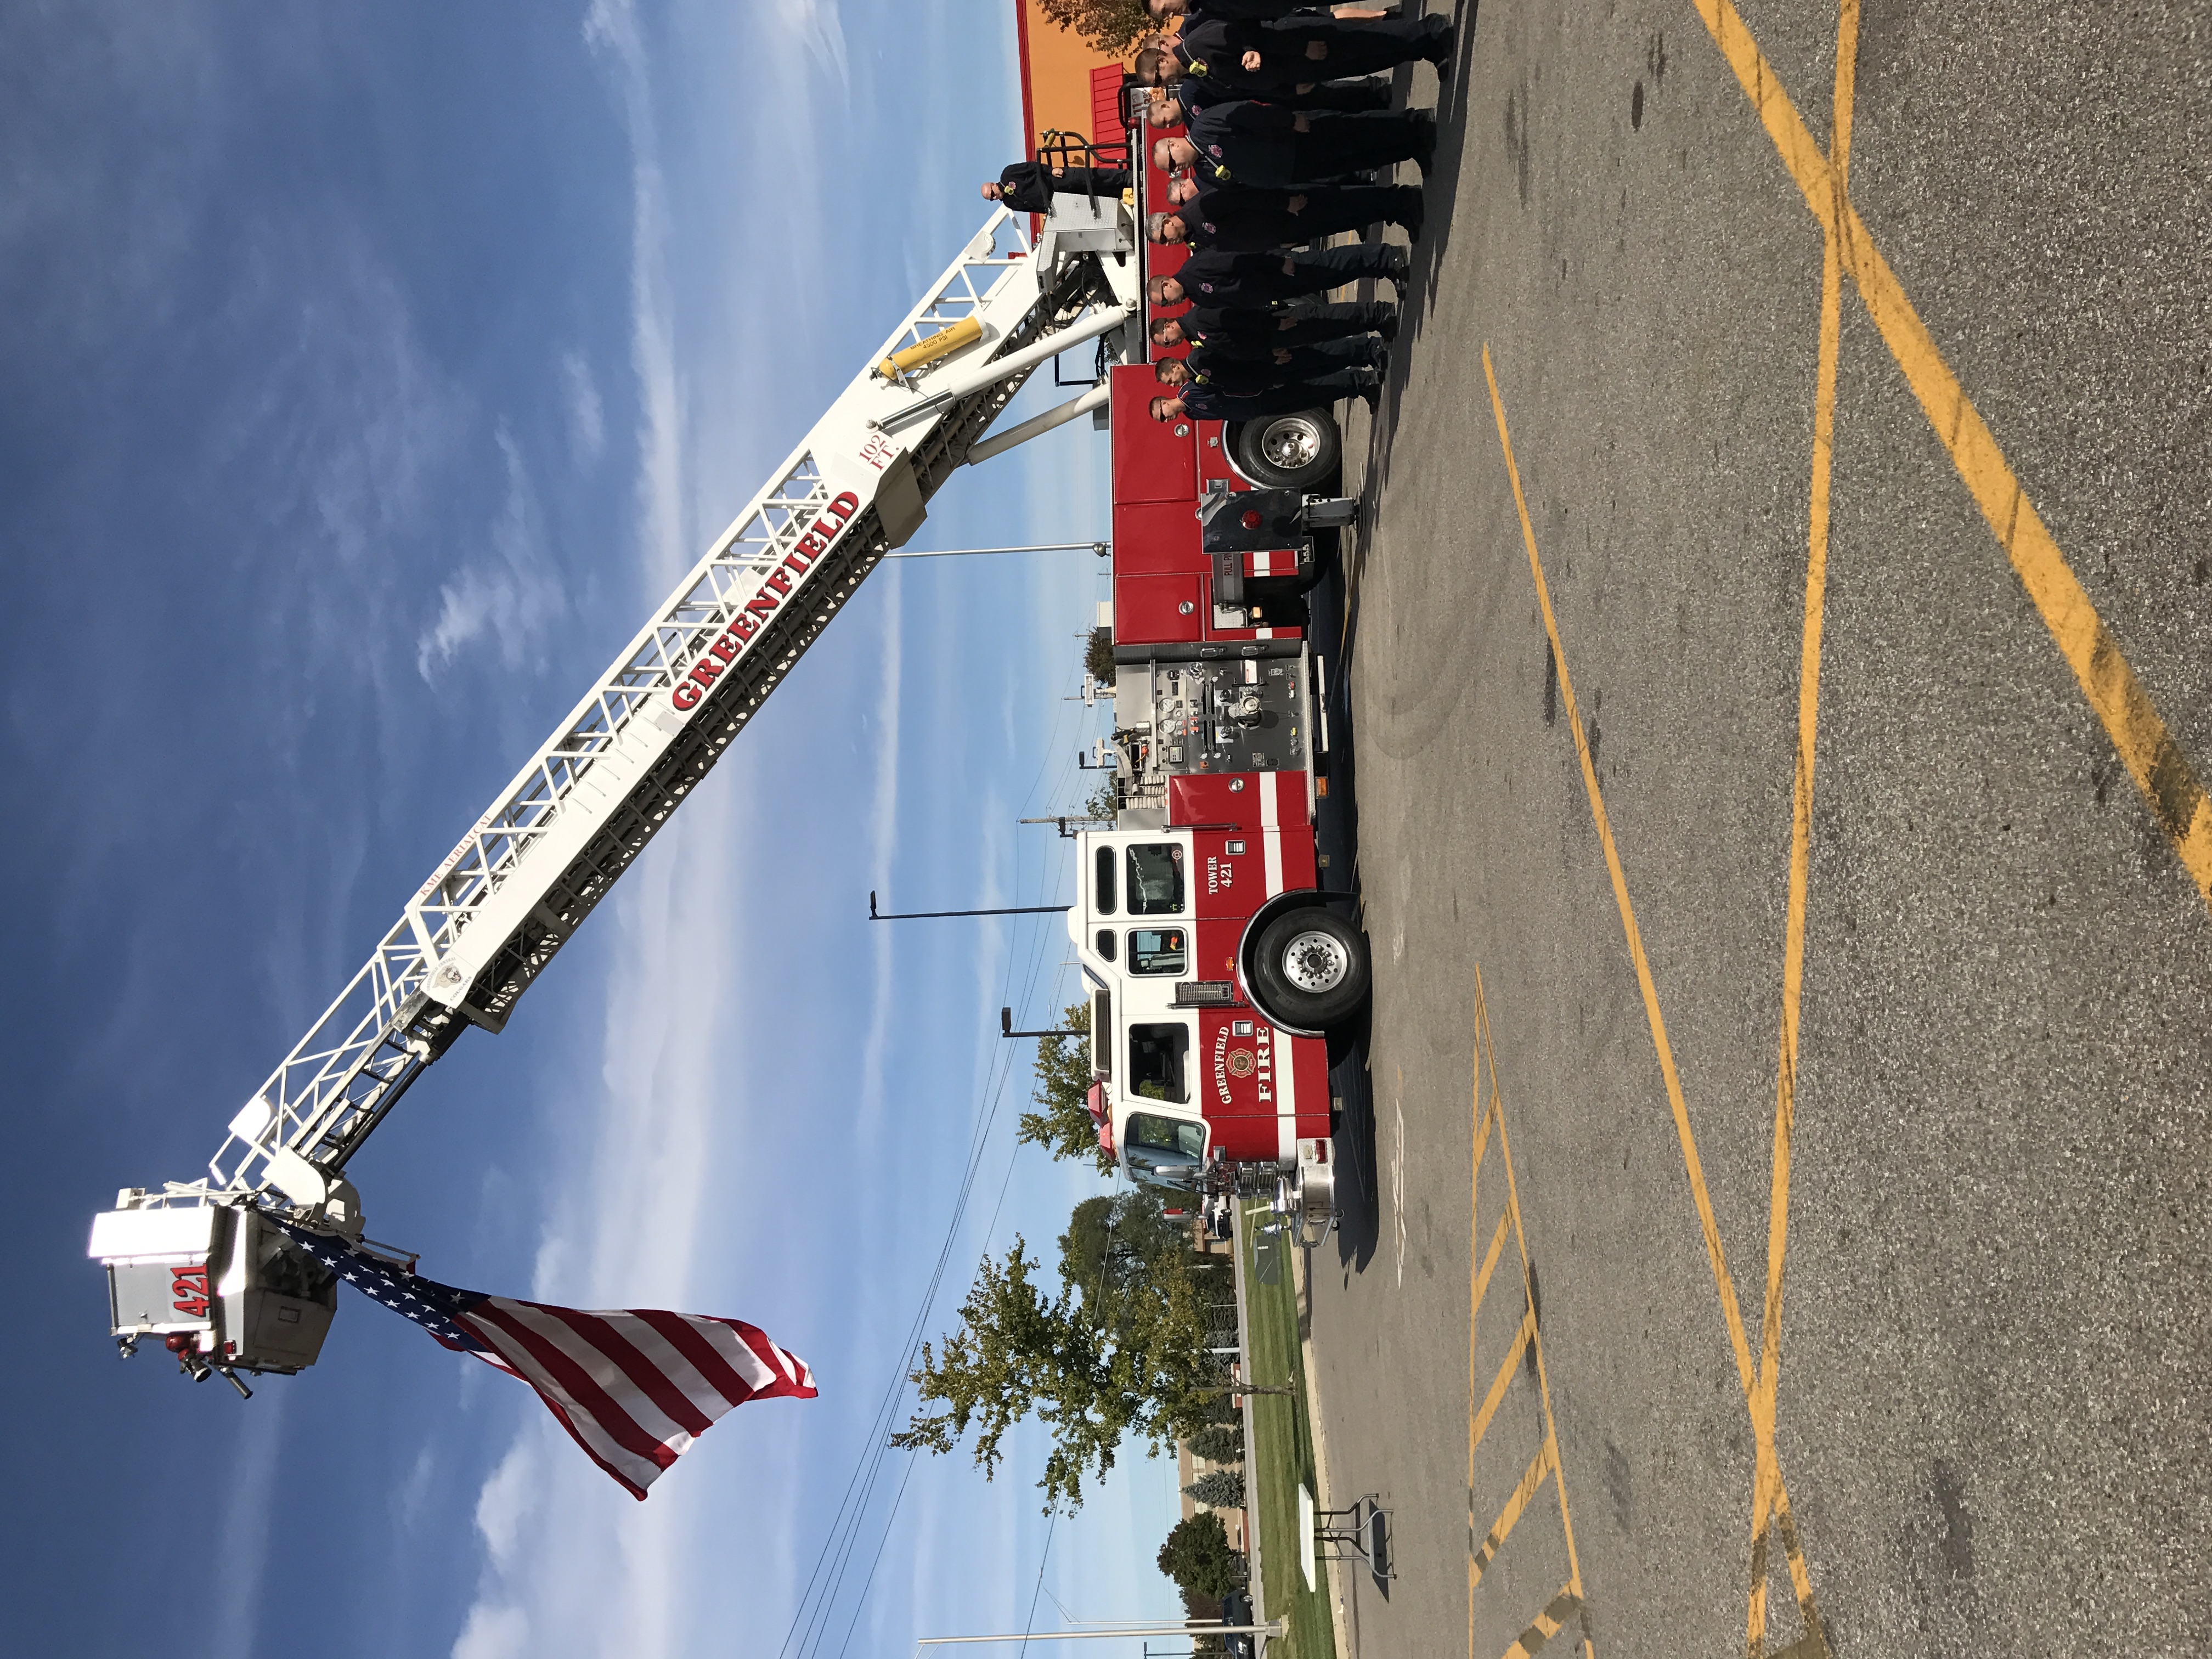 Red firetruck, the arm is lifted, and there's a flag hanging from the arm of the lift